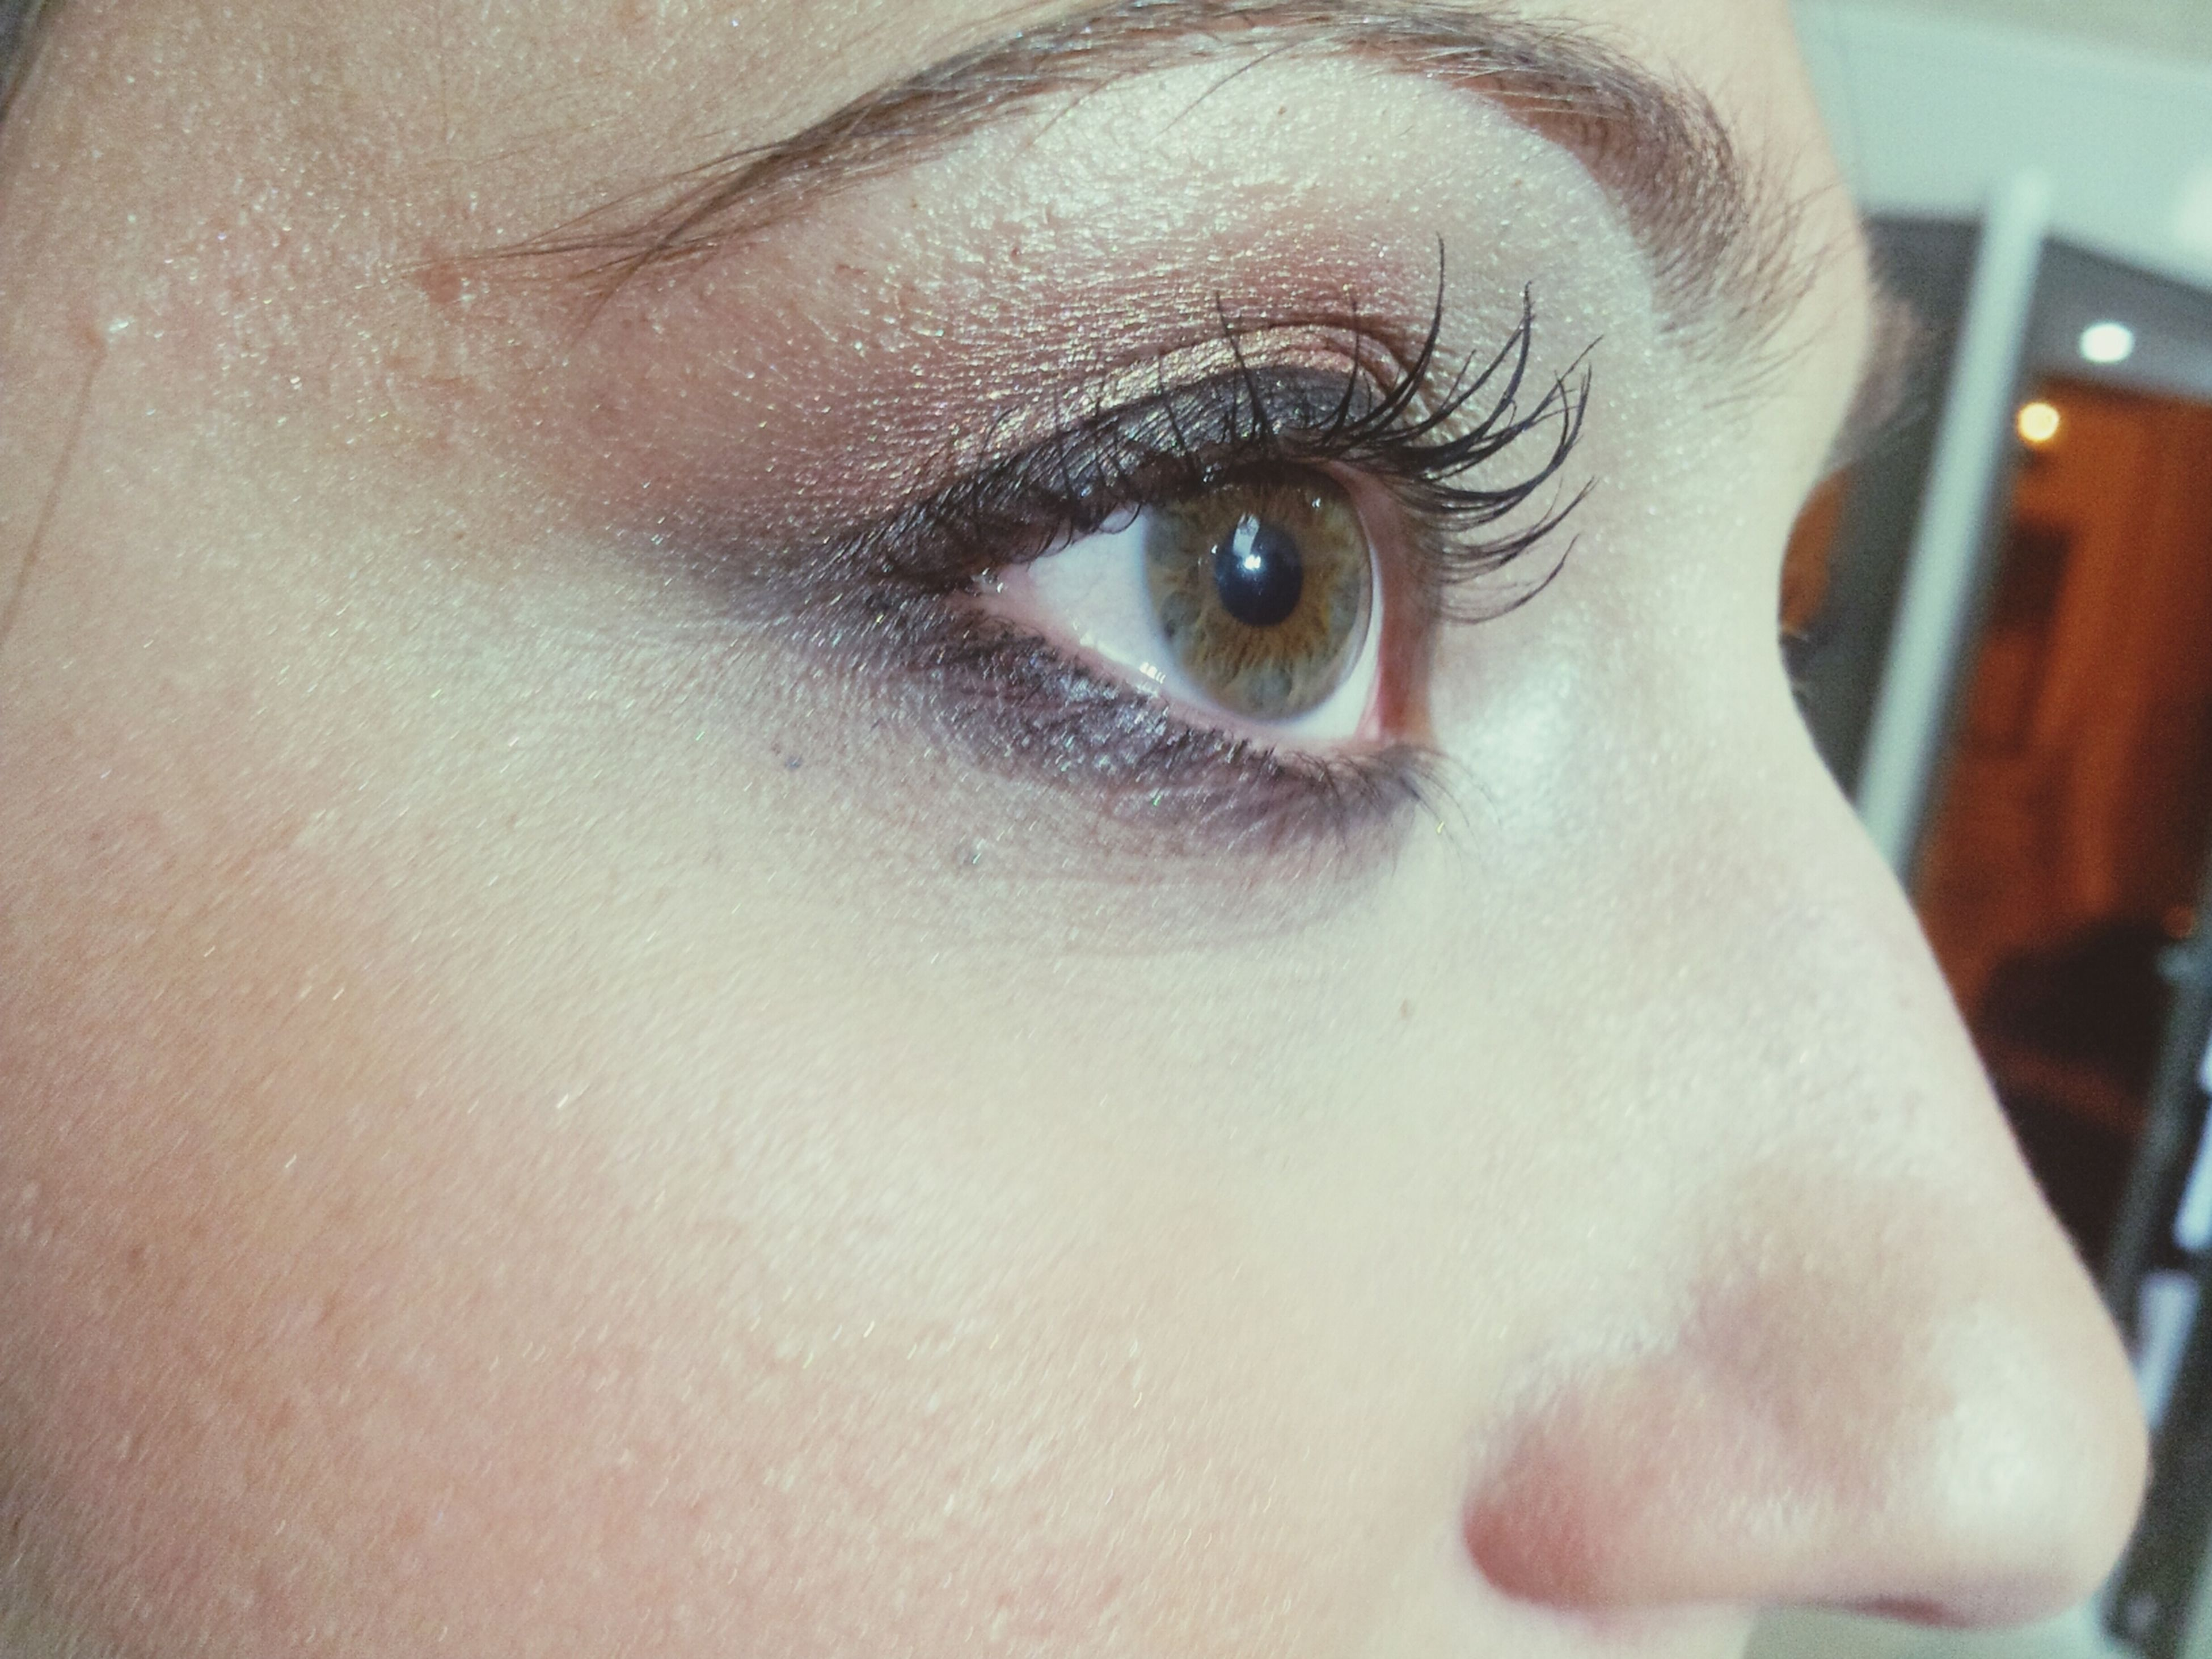 close-up, portrait, looking at camera, indoors, human eye, human face, headshot, lifestyles, young adult, part of, front view, human skin, person, eyelash, eyesight, focus on foreground, leisure activity